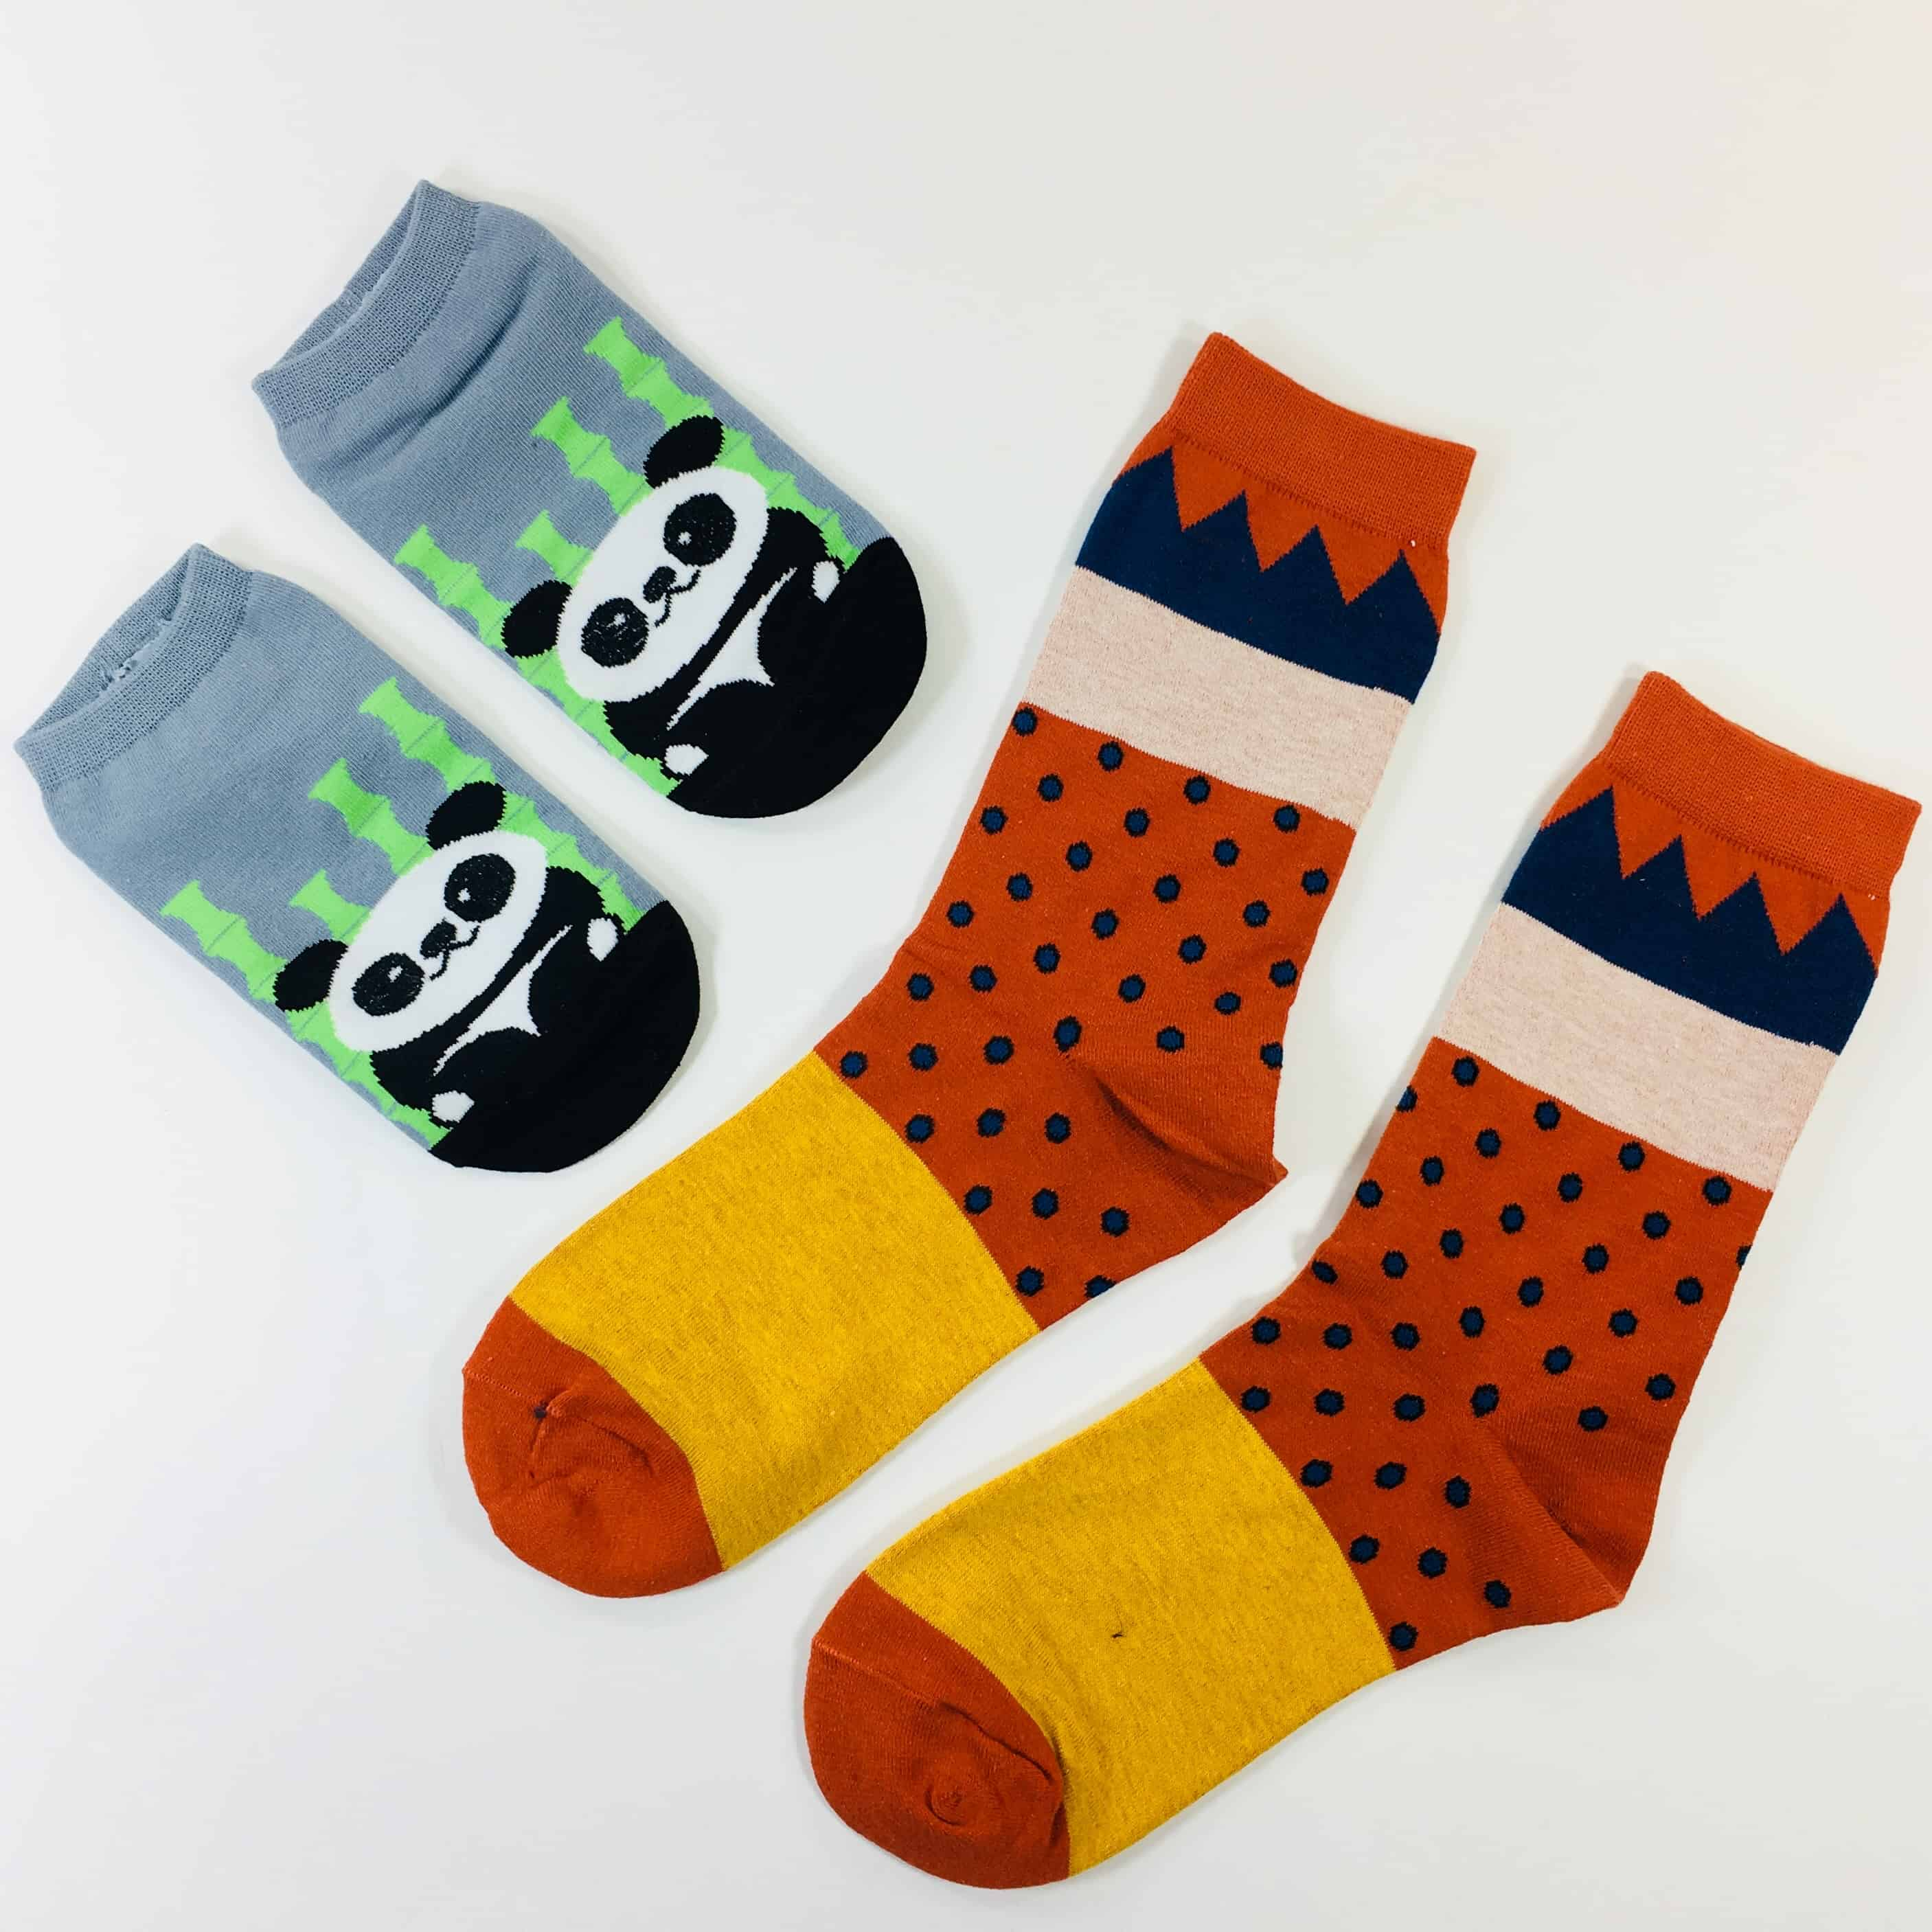 Socks Matter Valentine's Day Coupon: Get 50% OFF Your First Month!